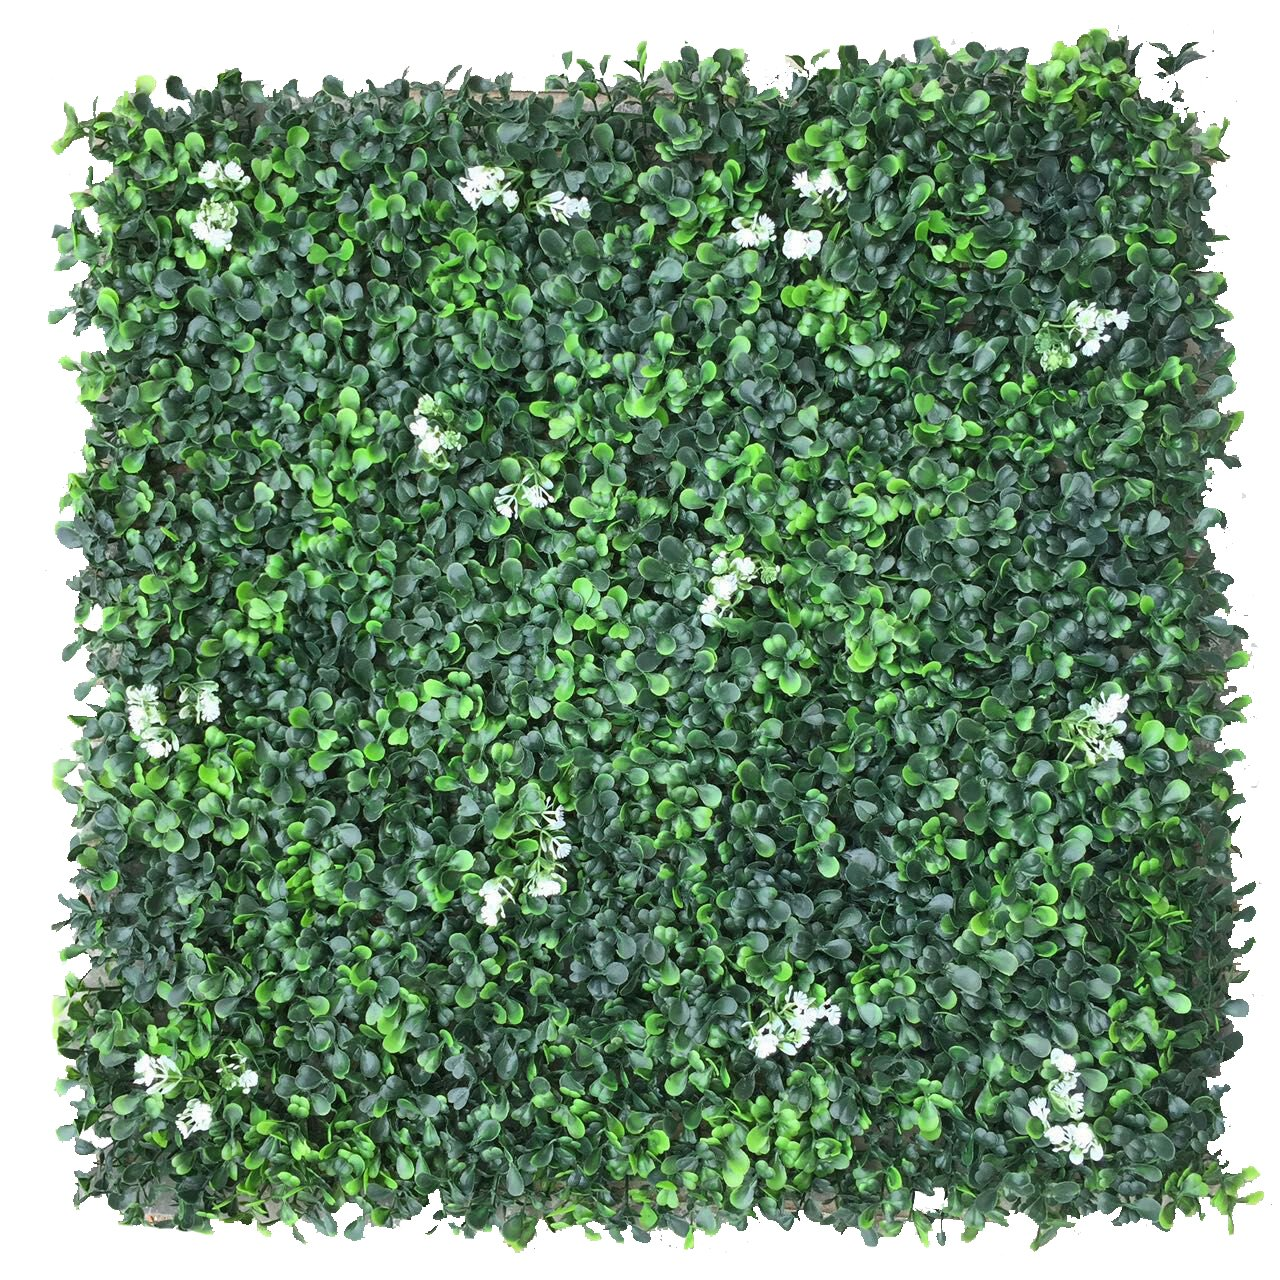 Porpora Artificial Hedge Plant, Greenery Panels Suitable for Both Outdoor or Indoor use, Garden, Backyard and/or Home Decorations, Boxwood with white Flower 20 x 20 Inch (12 pack) by e-Joy